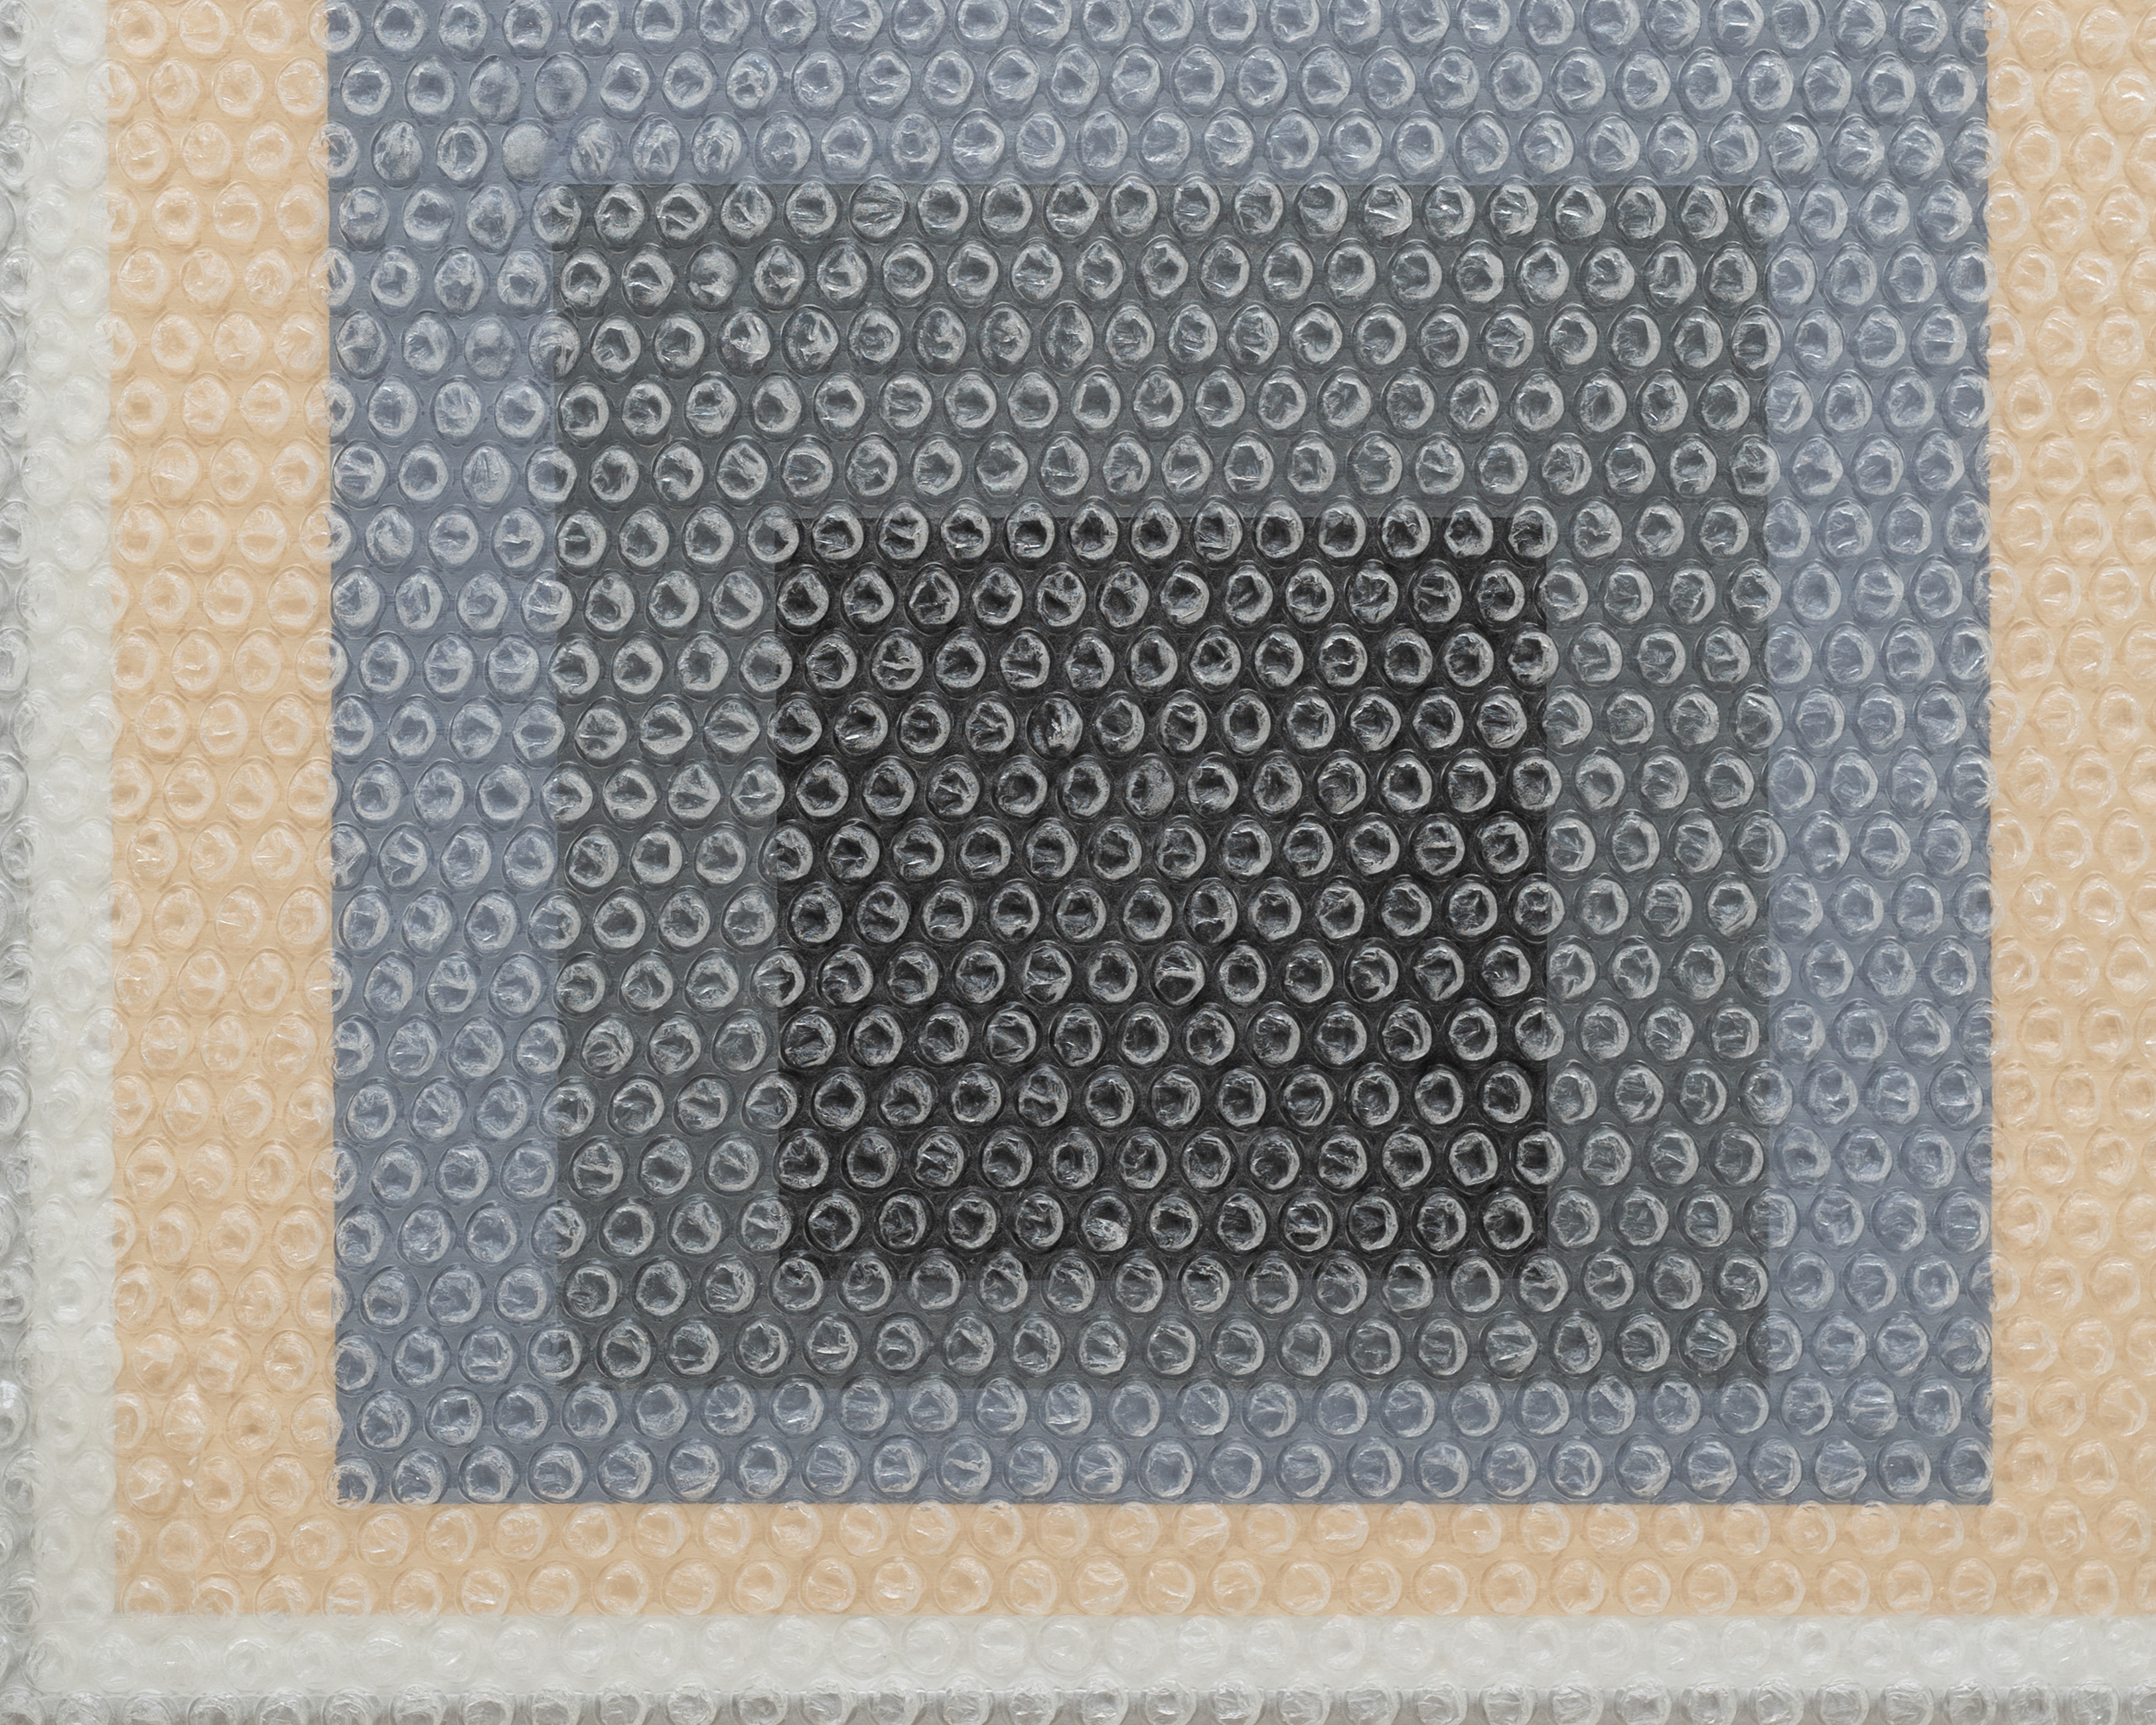 tammi campbell homage to the square with bubble wrap and packing tape 10